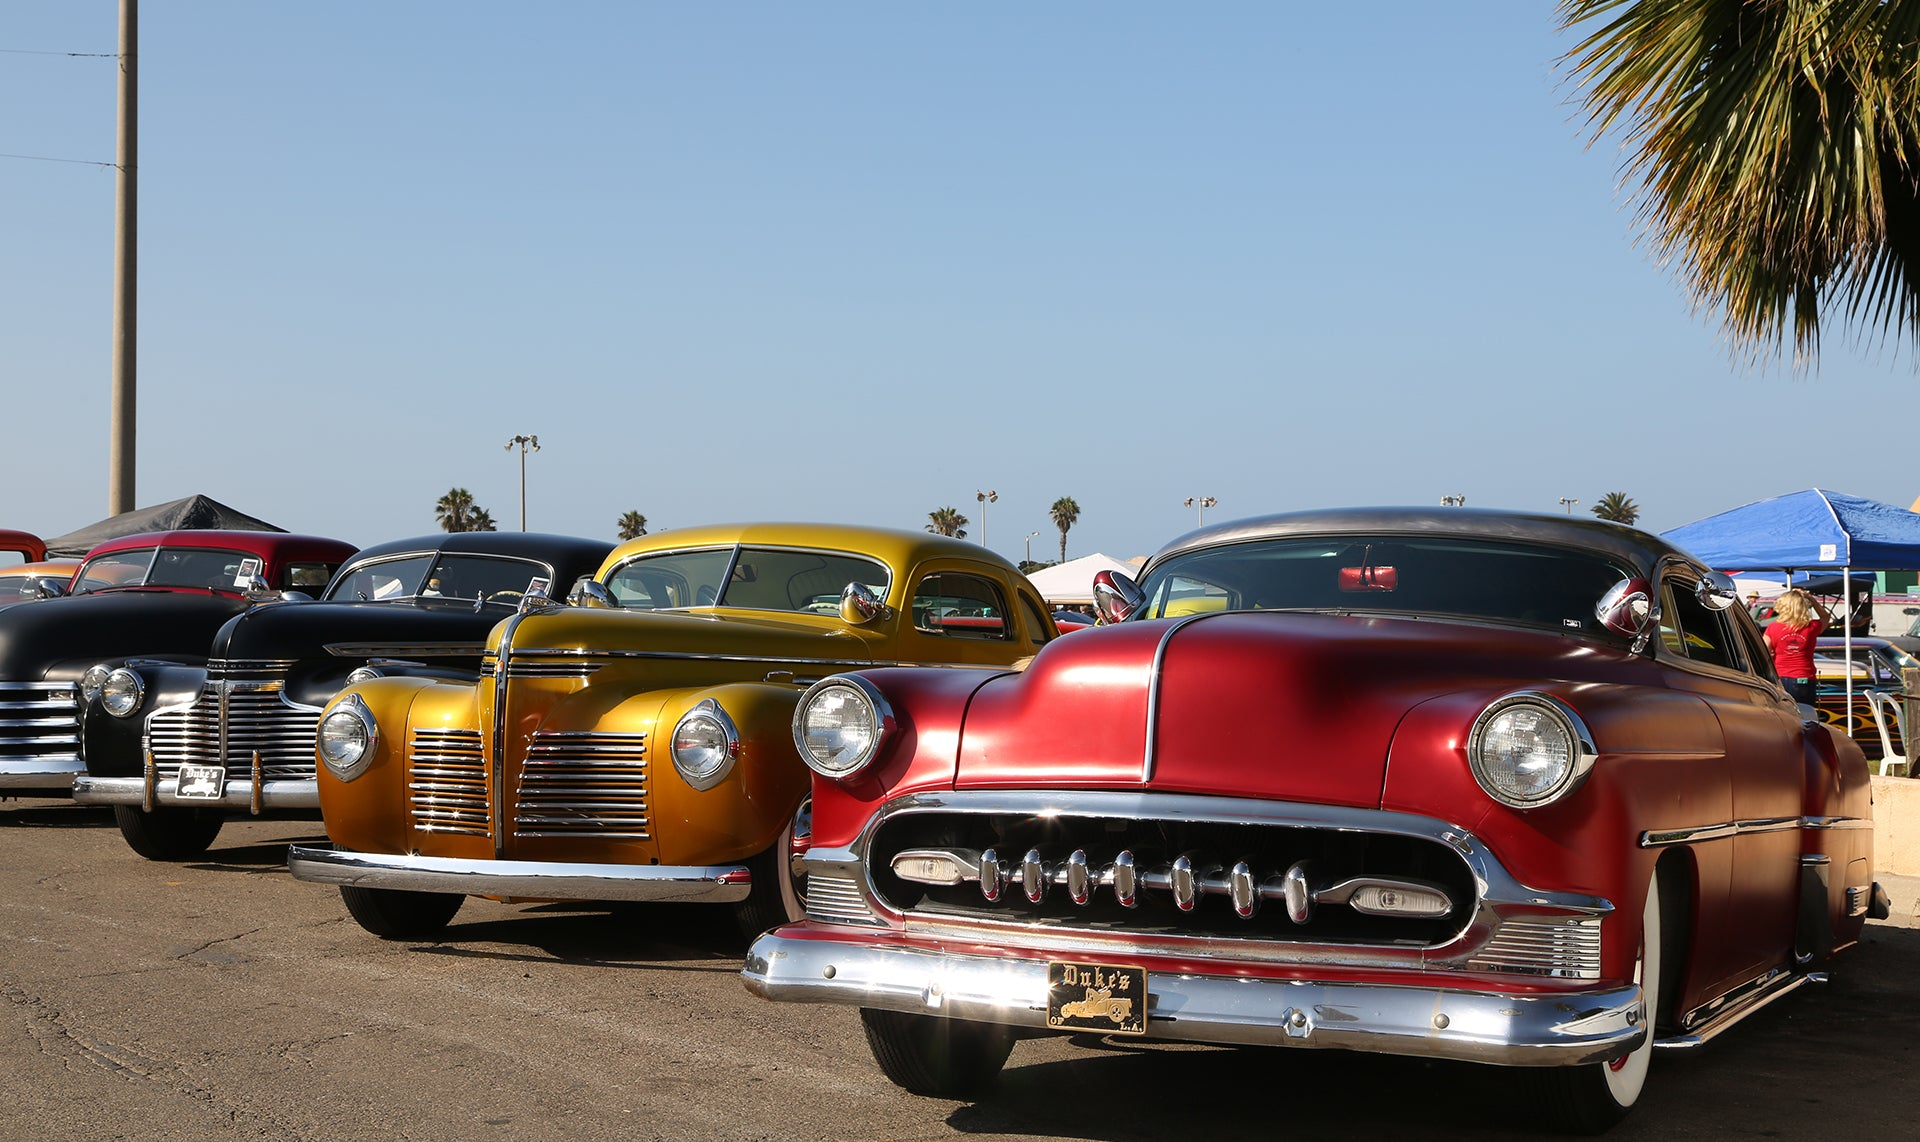 Nice shot of Chevrolets in line at ventura nationals 2015